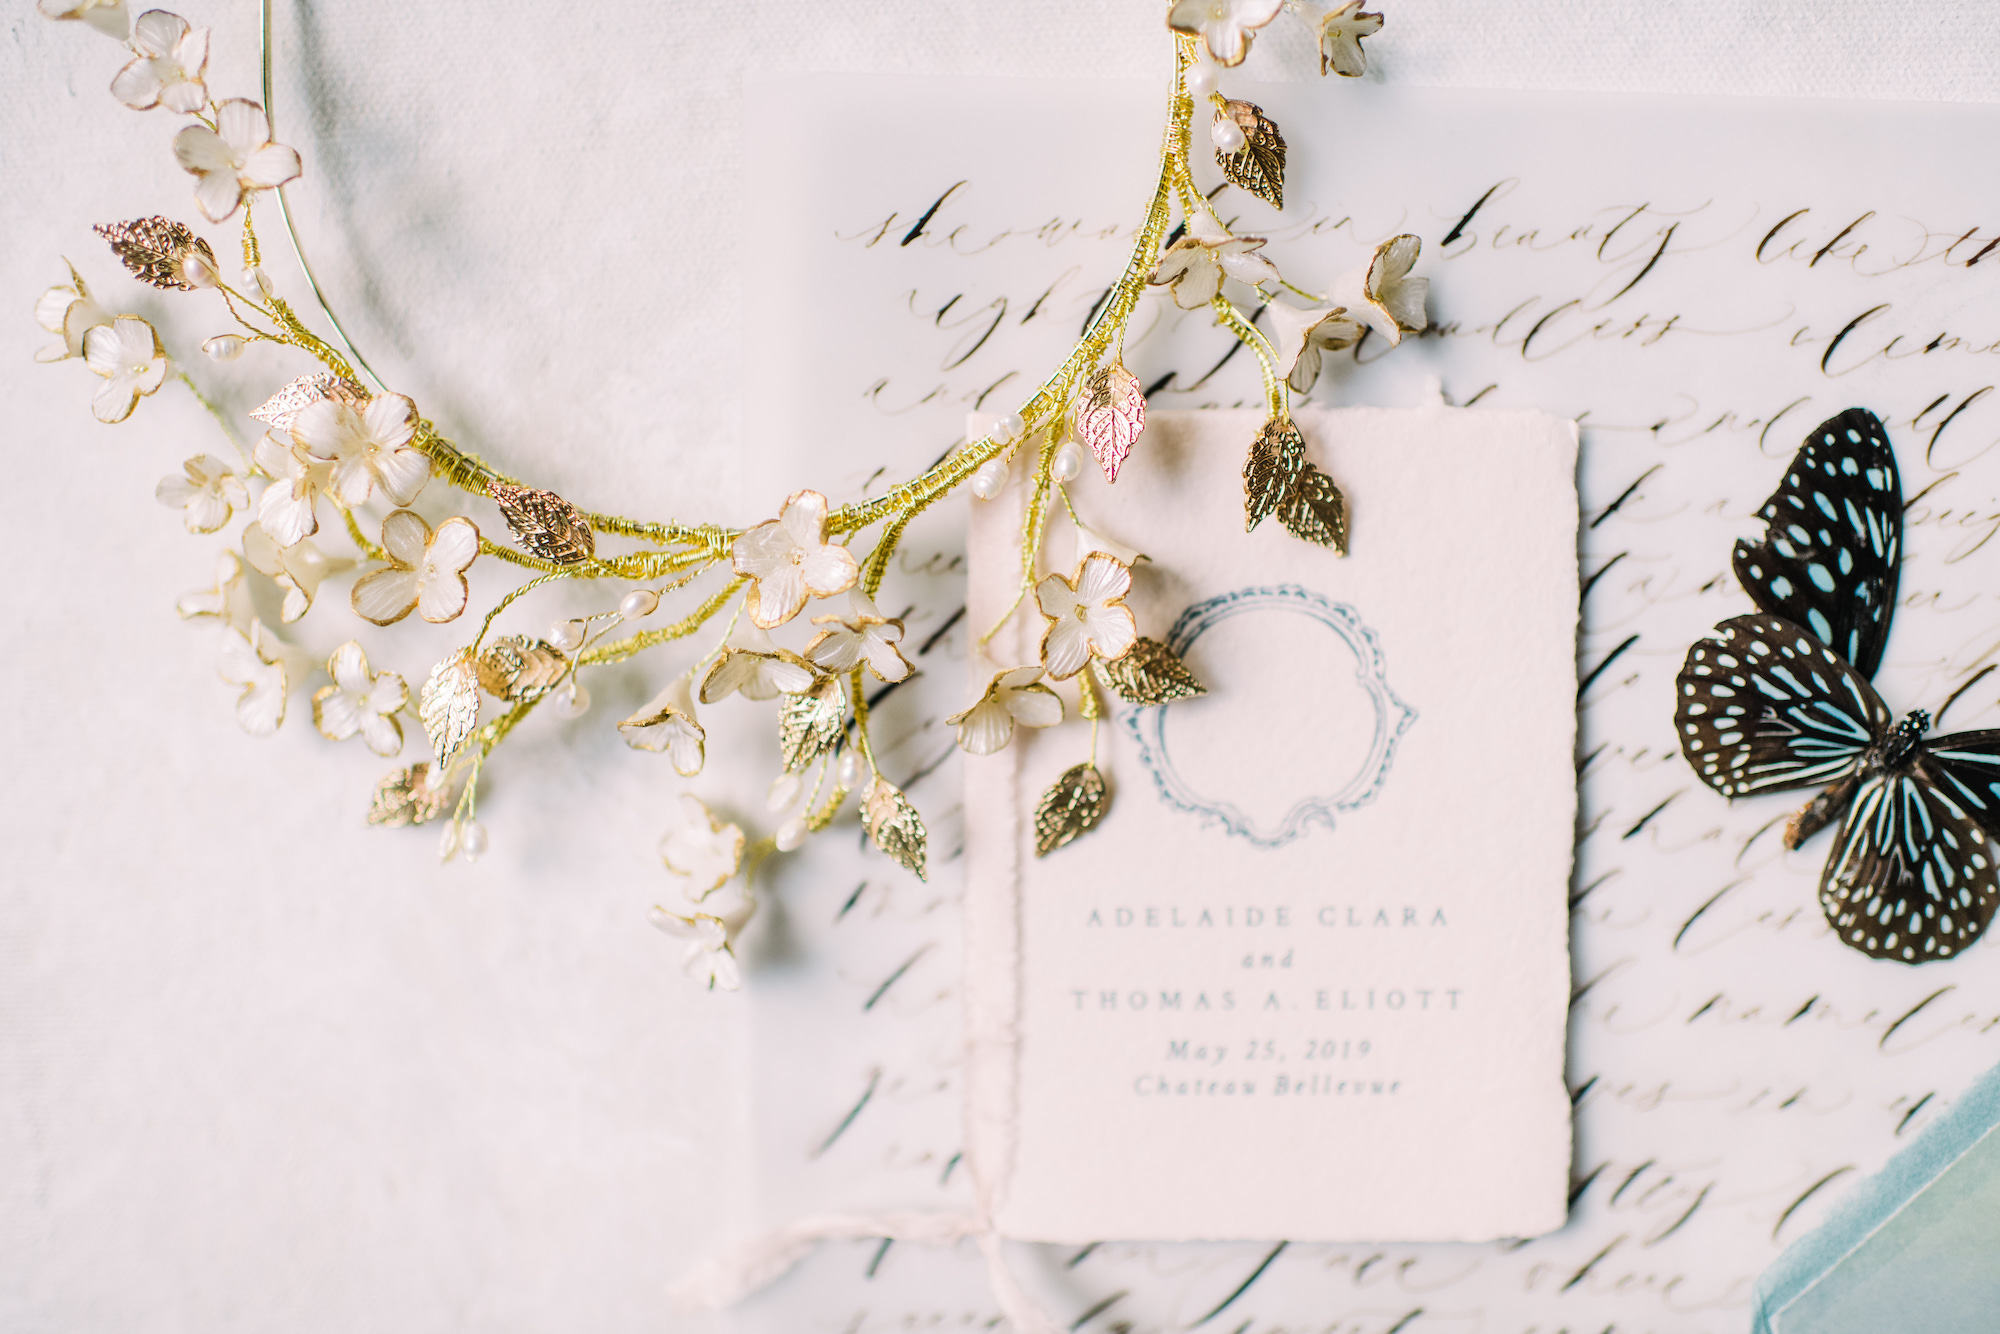 Jade-Magnolia-Workshop-Sojourn-Weddings-Kaiti-Moyers-Photography-006.jpg